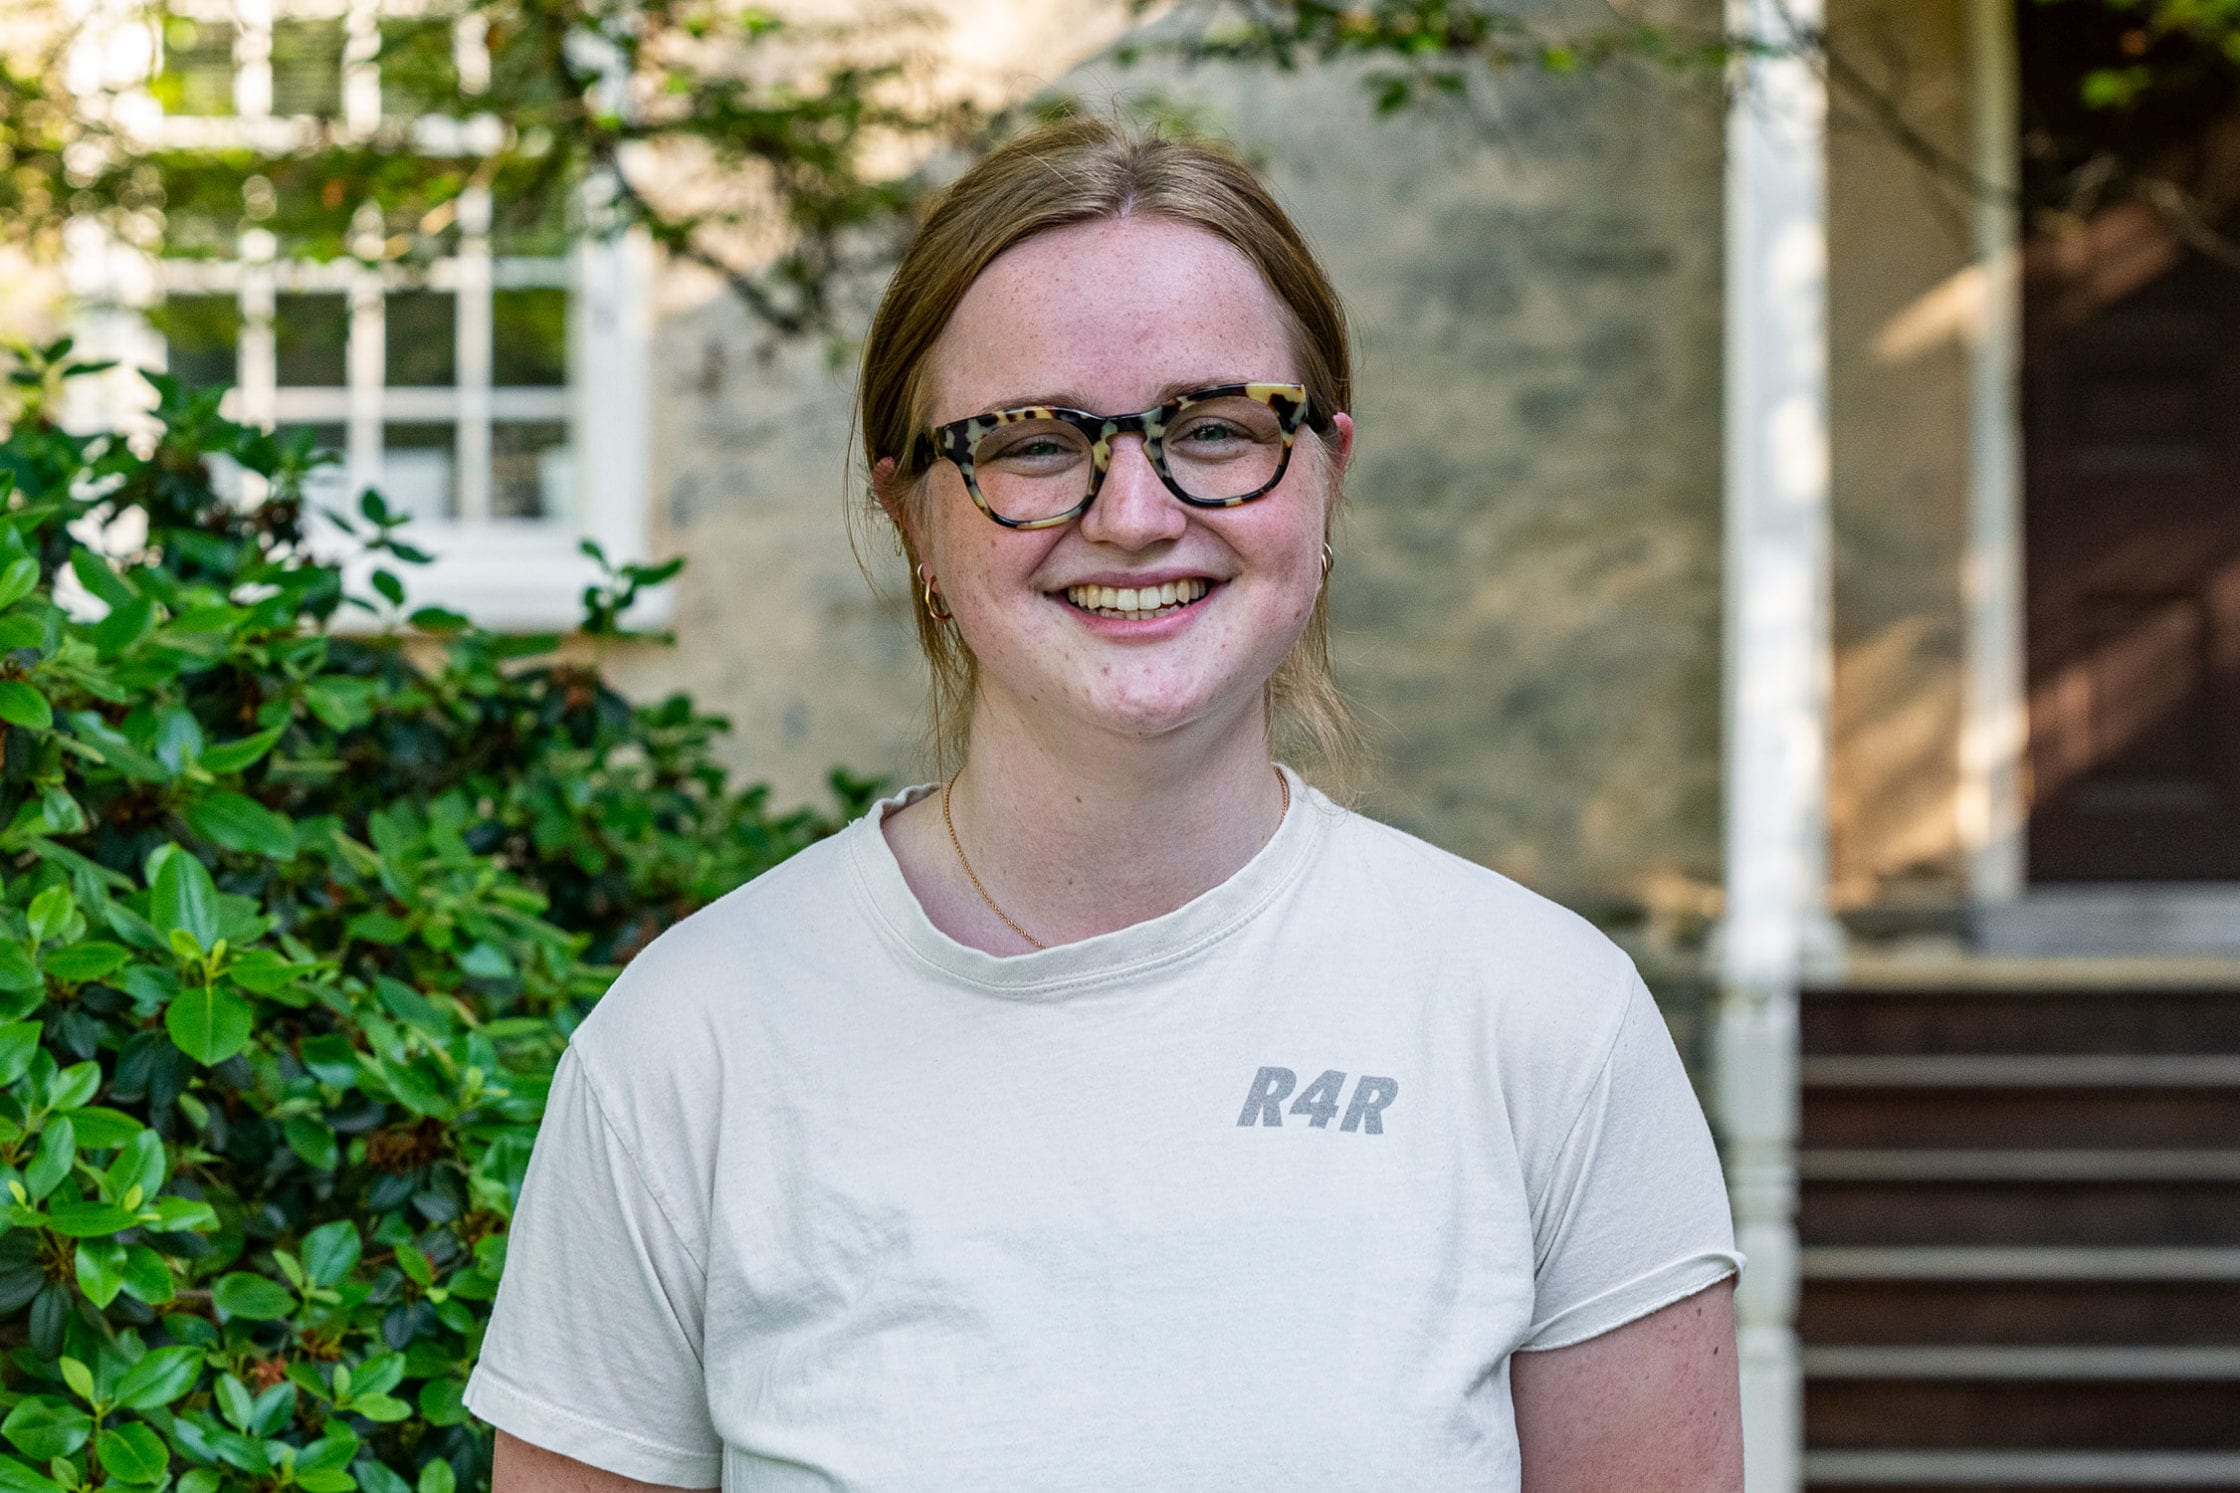 A headshot of Fiona wearing a white short-sleeved shirt standing in front of Founders Hall.